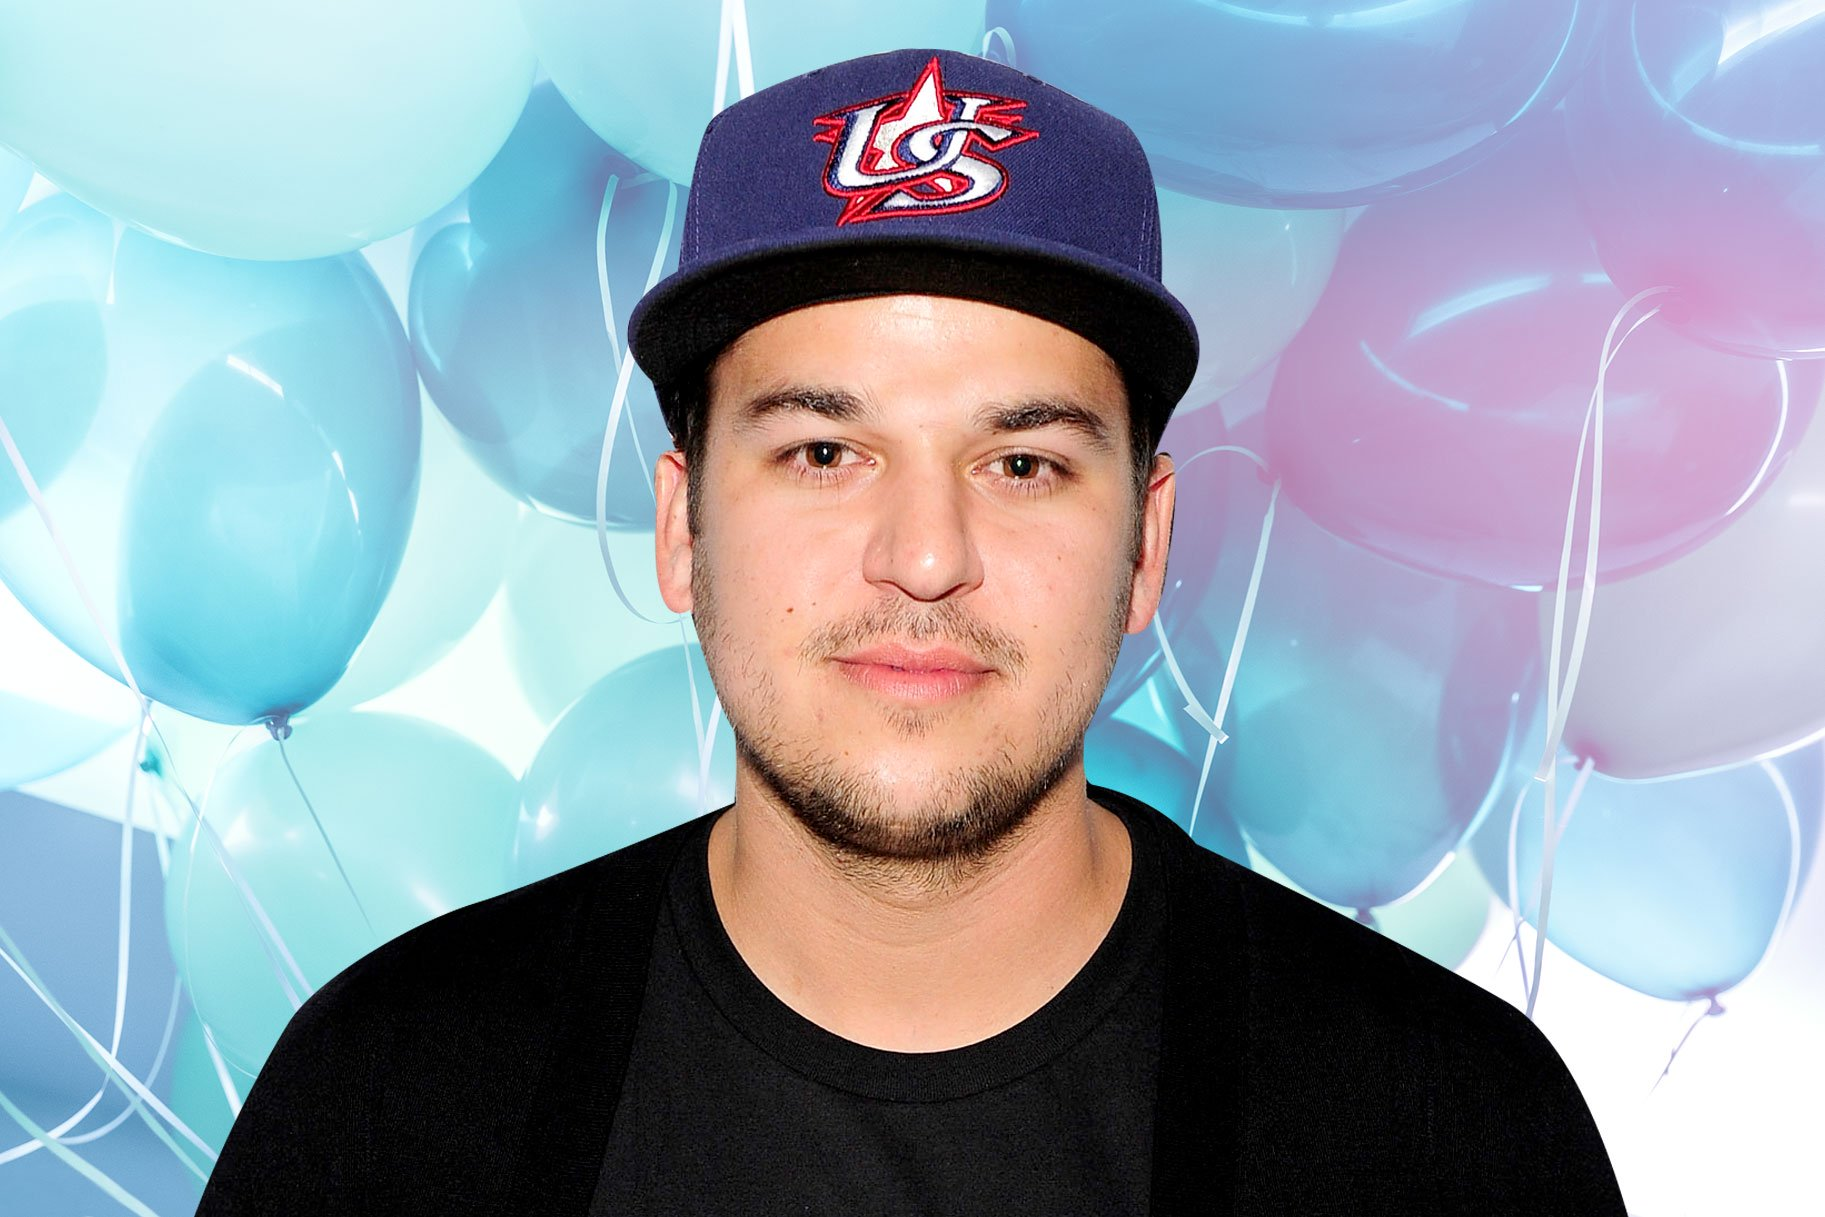 KUWTK: Rob Kardashian Gets New Ink To Show Off Confidently After Losing Weight!